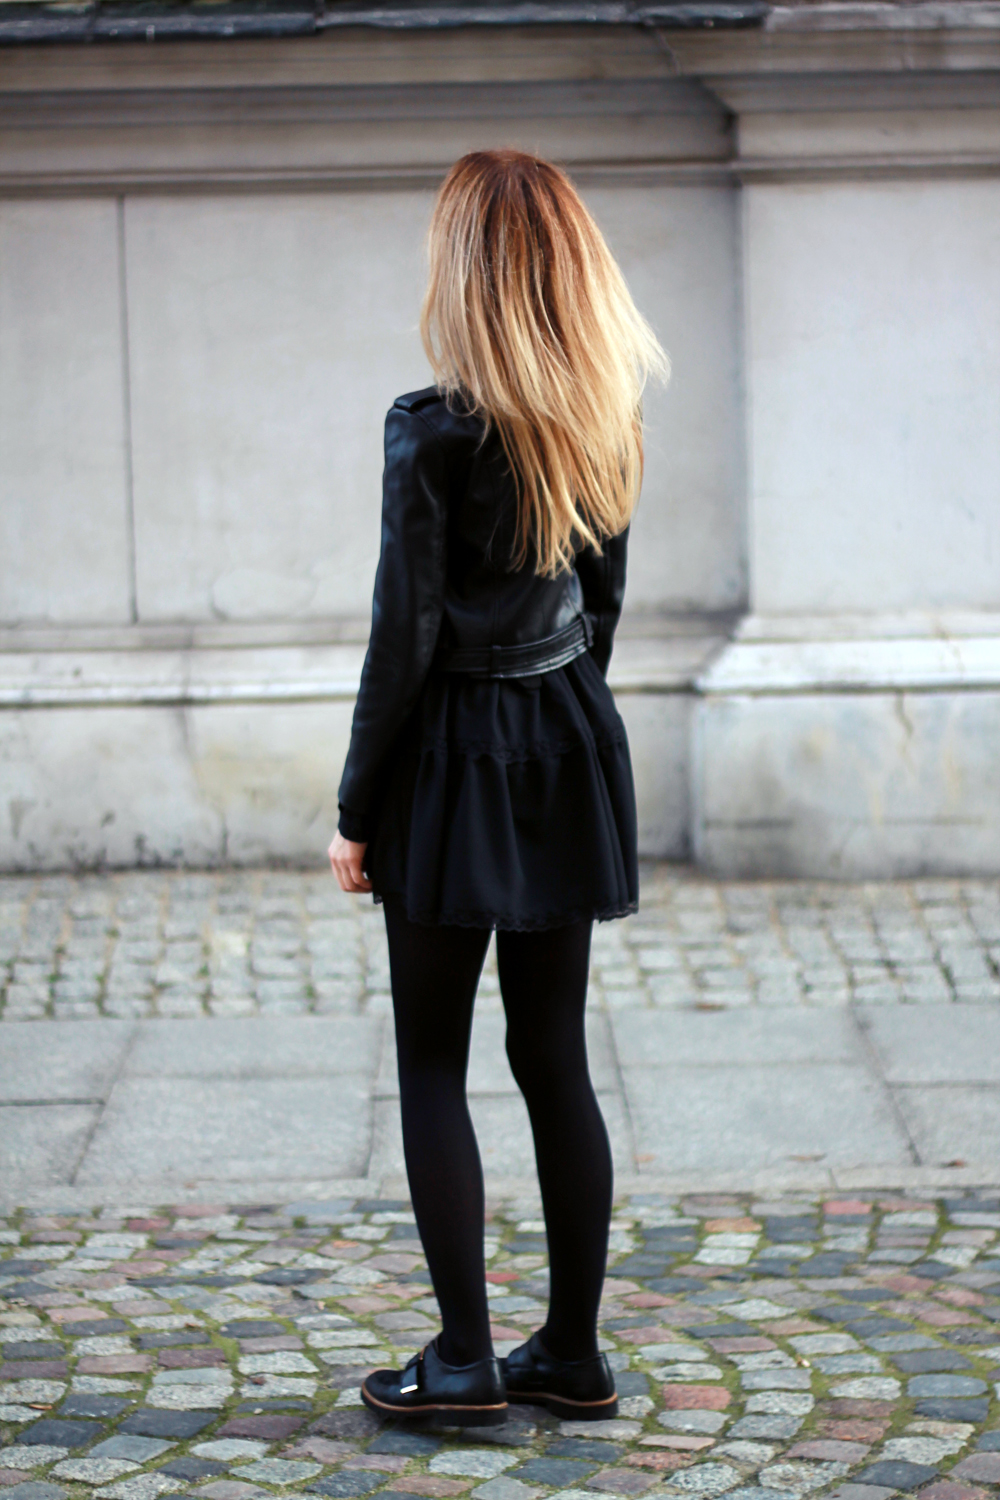 Black dress tumblr - Black Dress Zara Leather Jacket Blonde Tumblr Girl Look Outfit